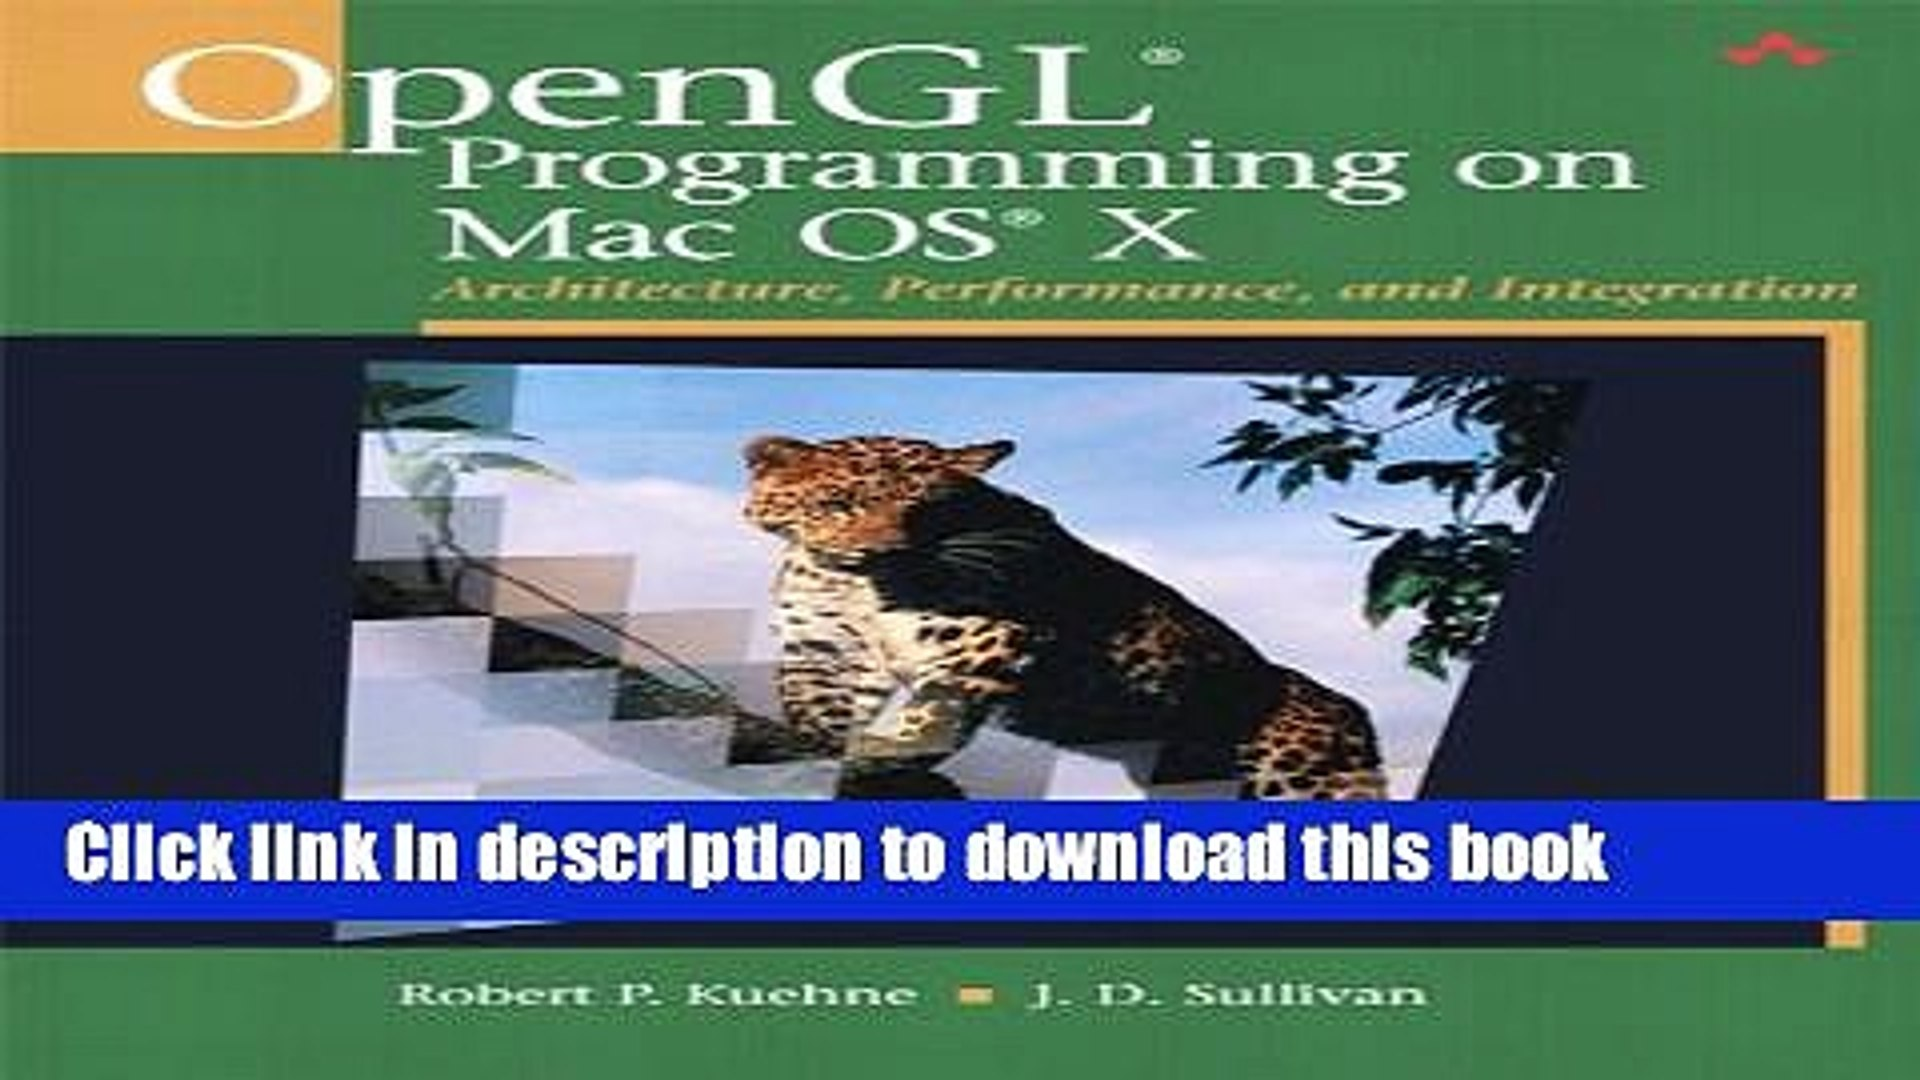 Read OpenGL Programming on Mac OS X: Architecture, Performance, and  Integration (Adobe Reader)